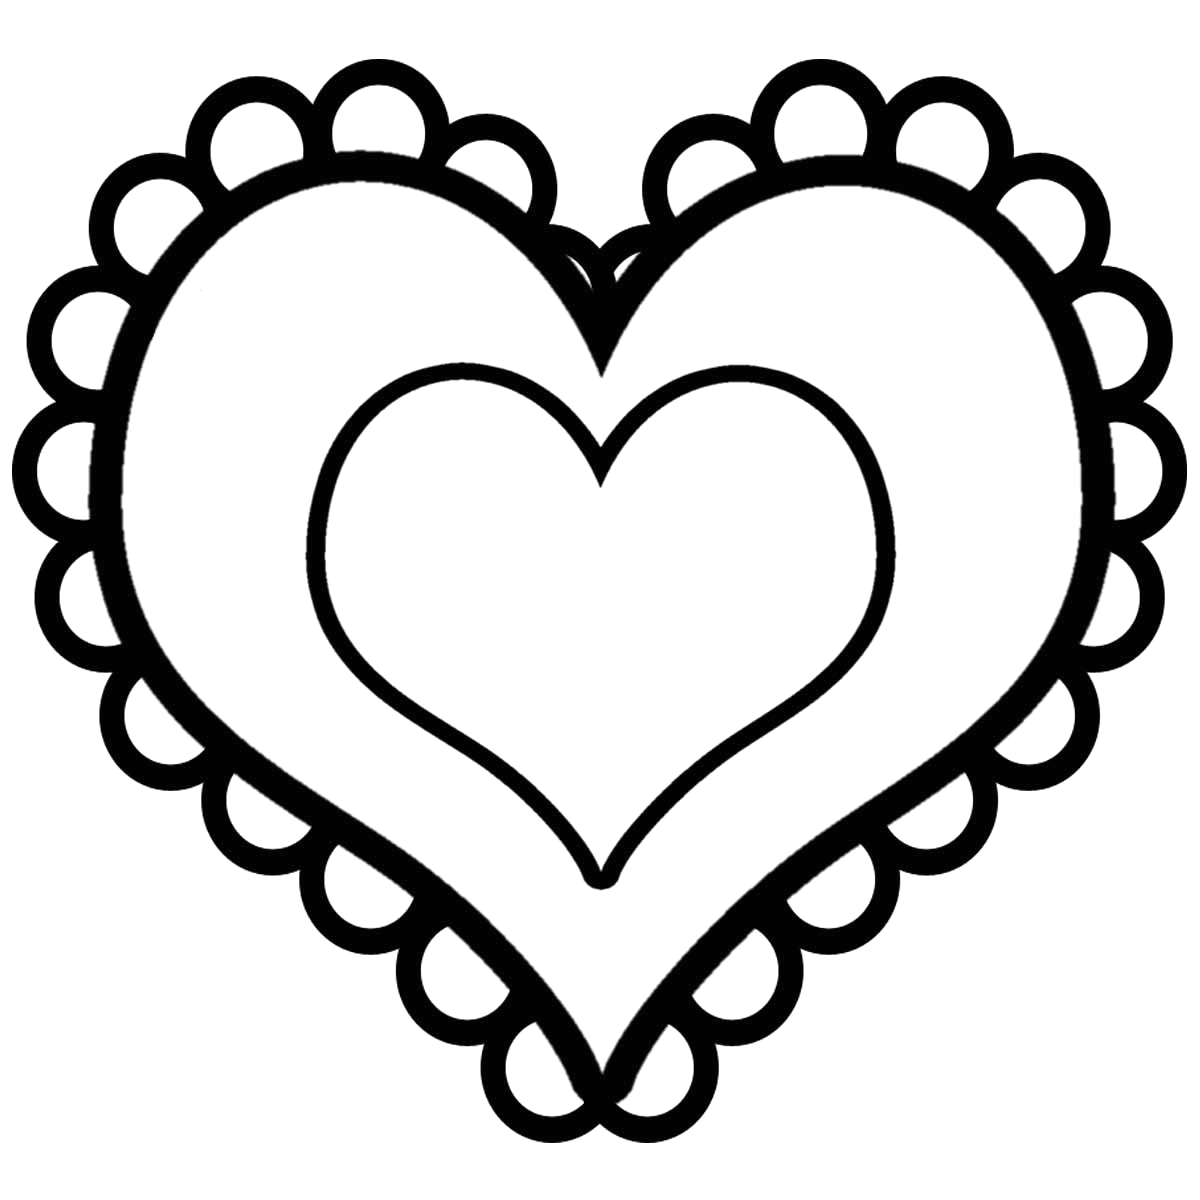 Free Printable Heart Coloring Pages for Kids Free Printable Heart Coloring Pages for Kids